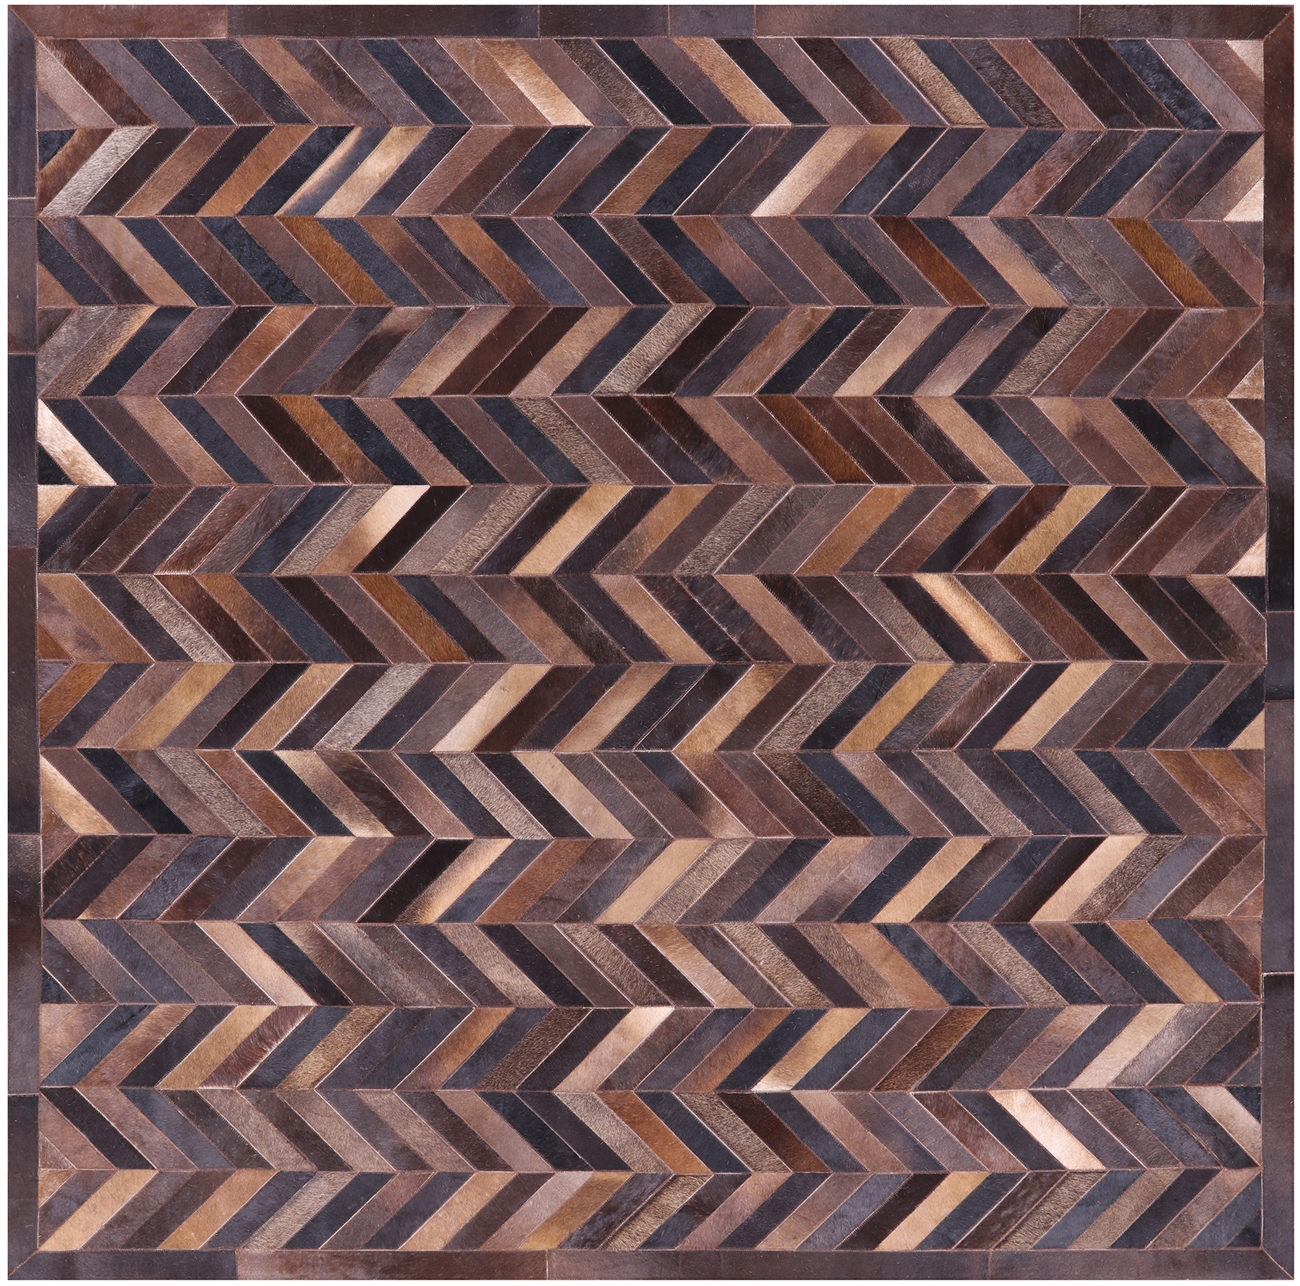 7 Square Hand Stitched Natural Cowhide Rug